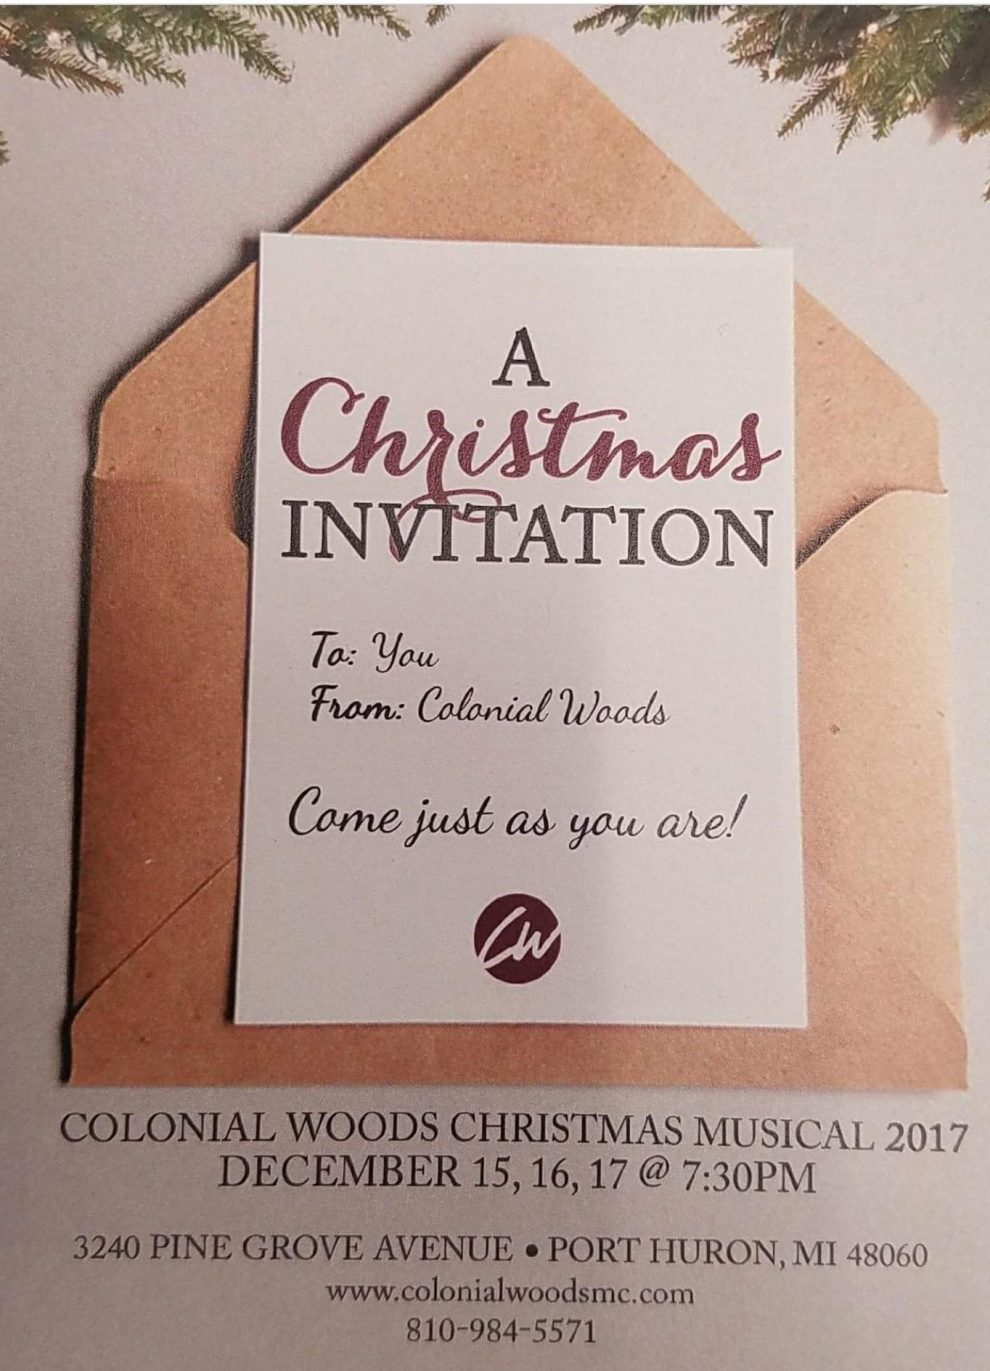 the colonial woods missionary church presents a christmas